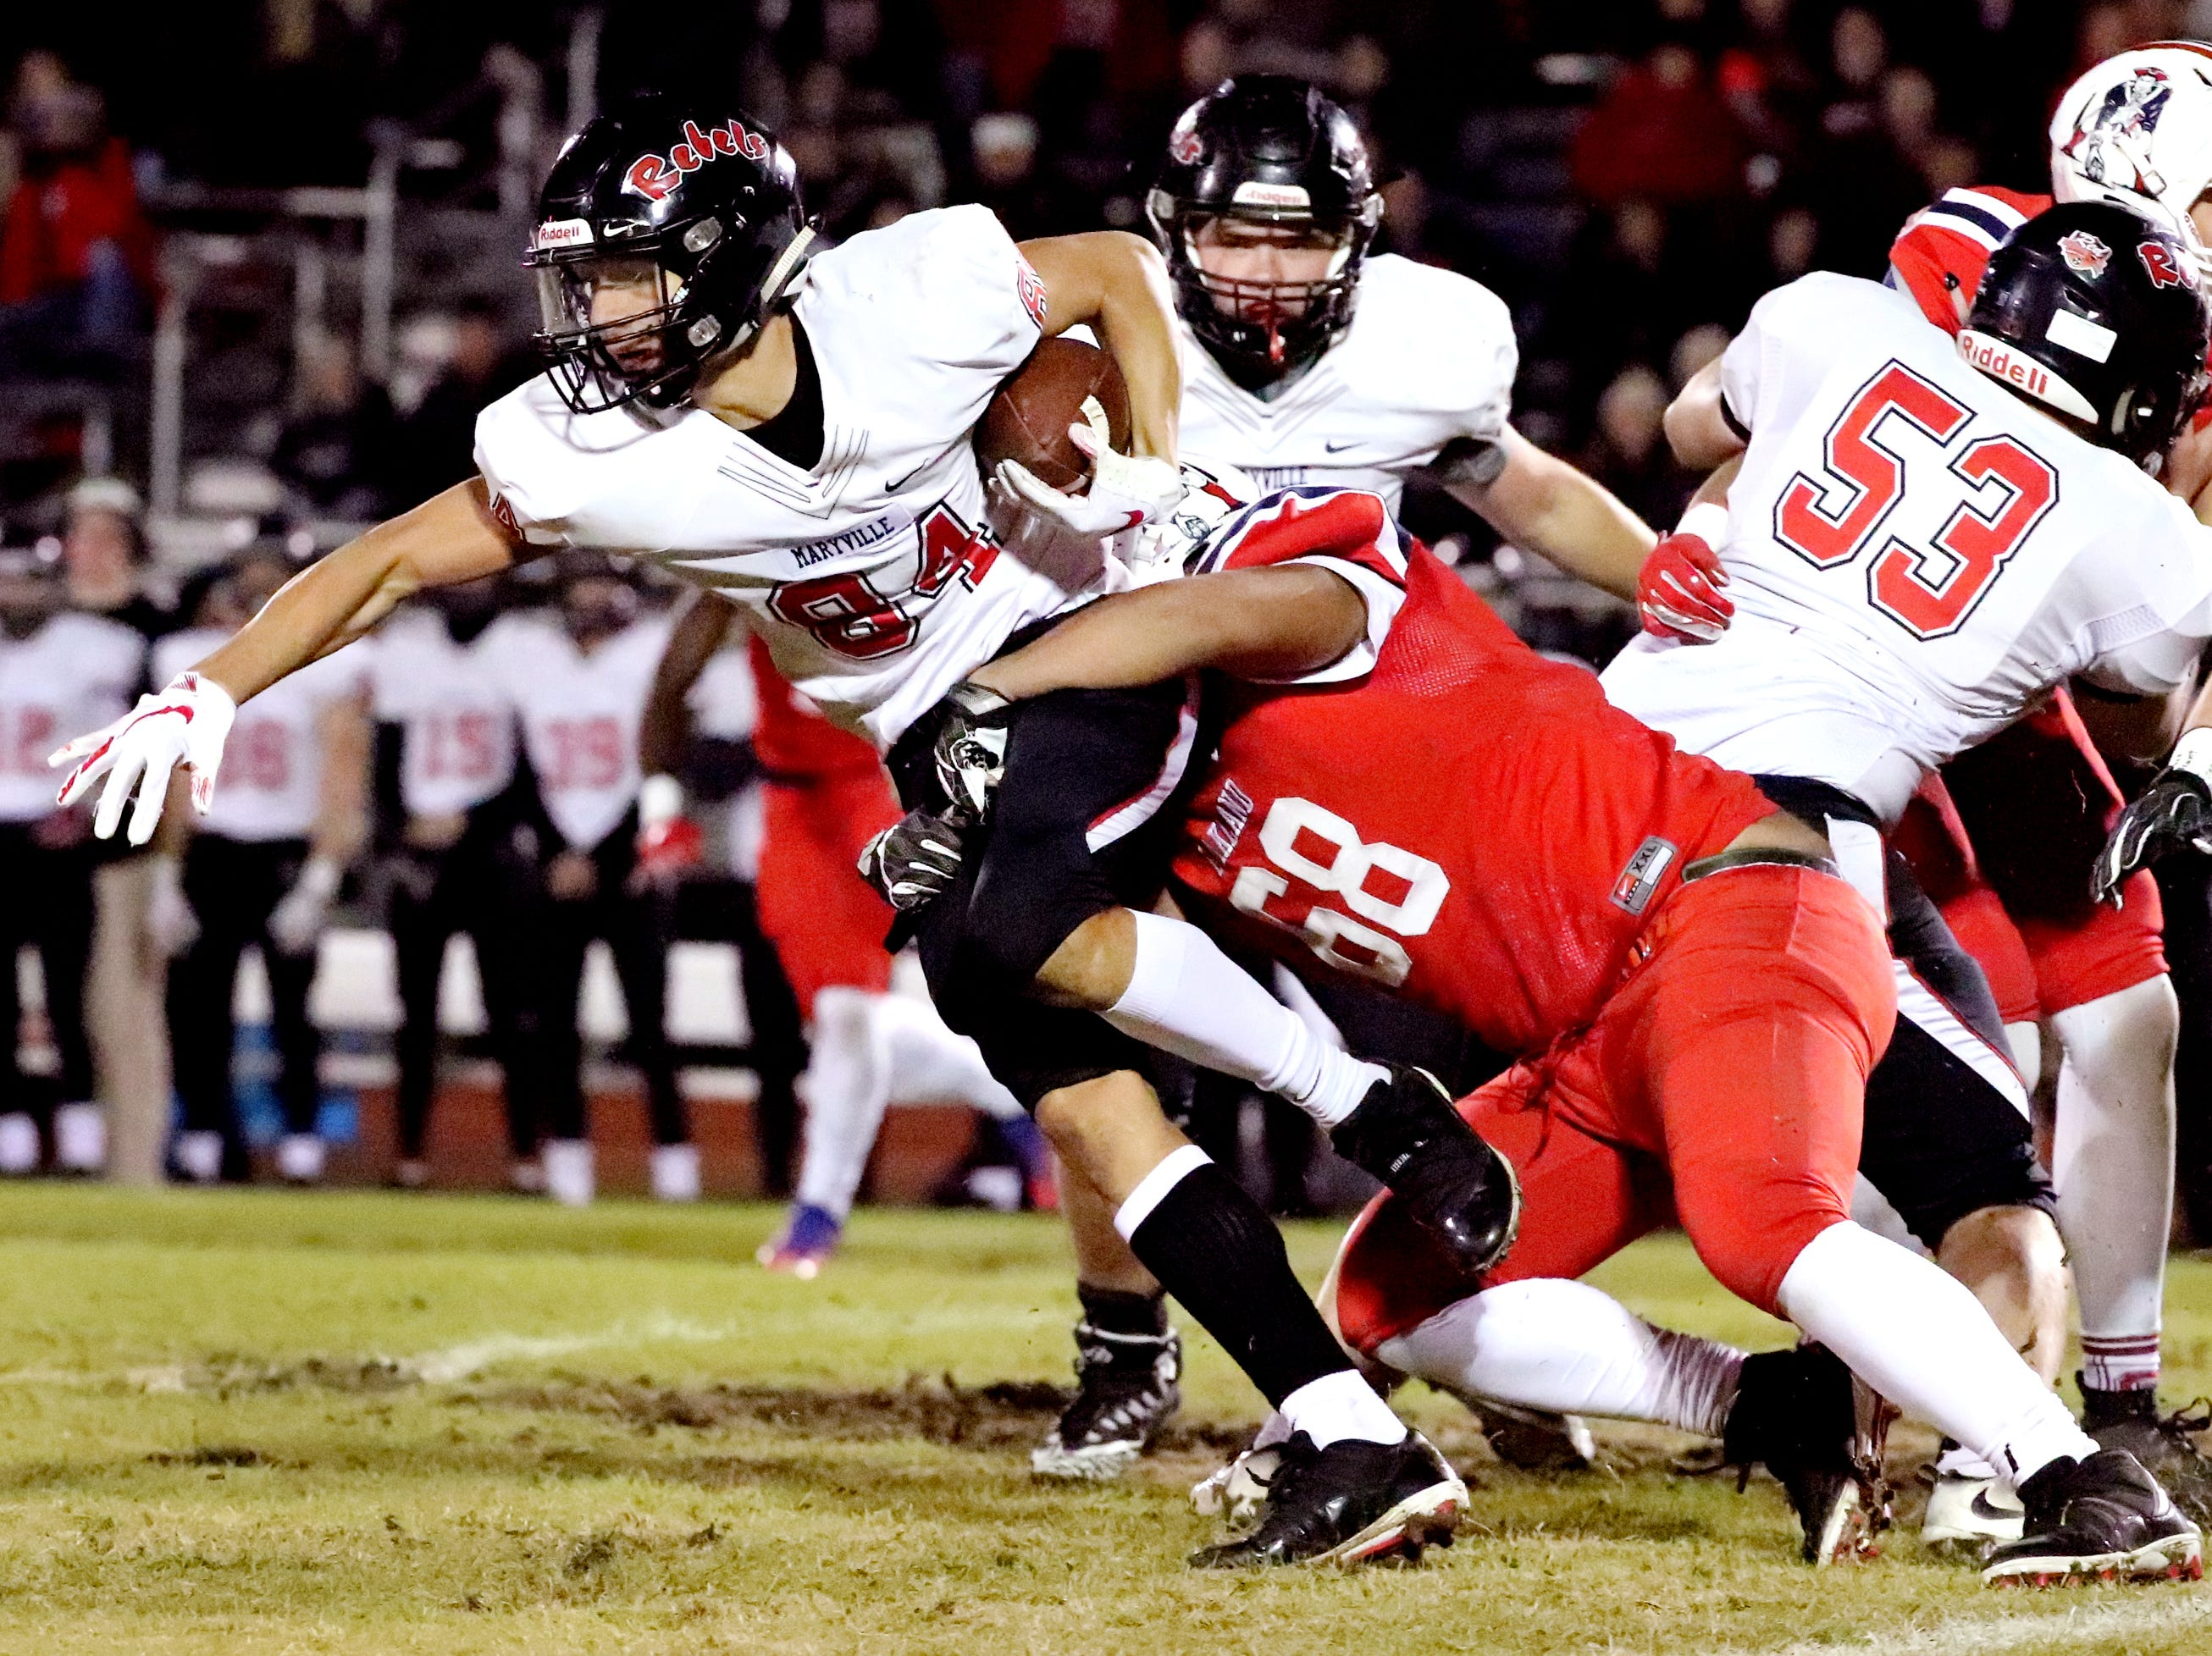 Maryville's Brayden Anderson (84) runs the ball as Oakland's Jaylen Willard (68) tackles him at Oakland in Murfreesboro, on Friday, Aug. 23 2018, during the 6A playoffs.